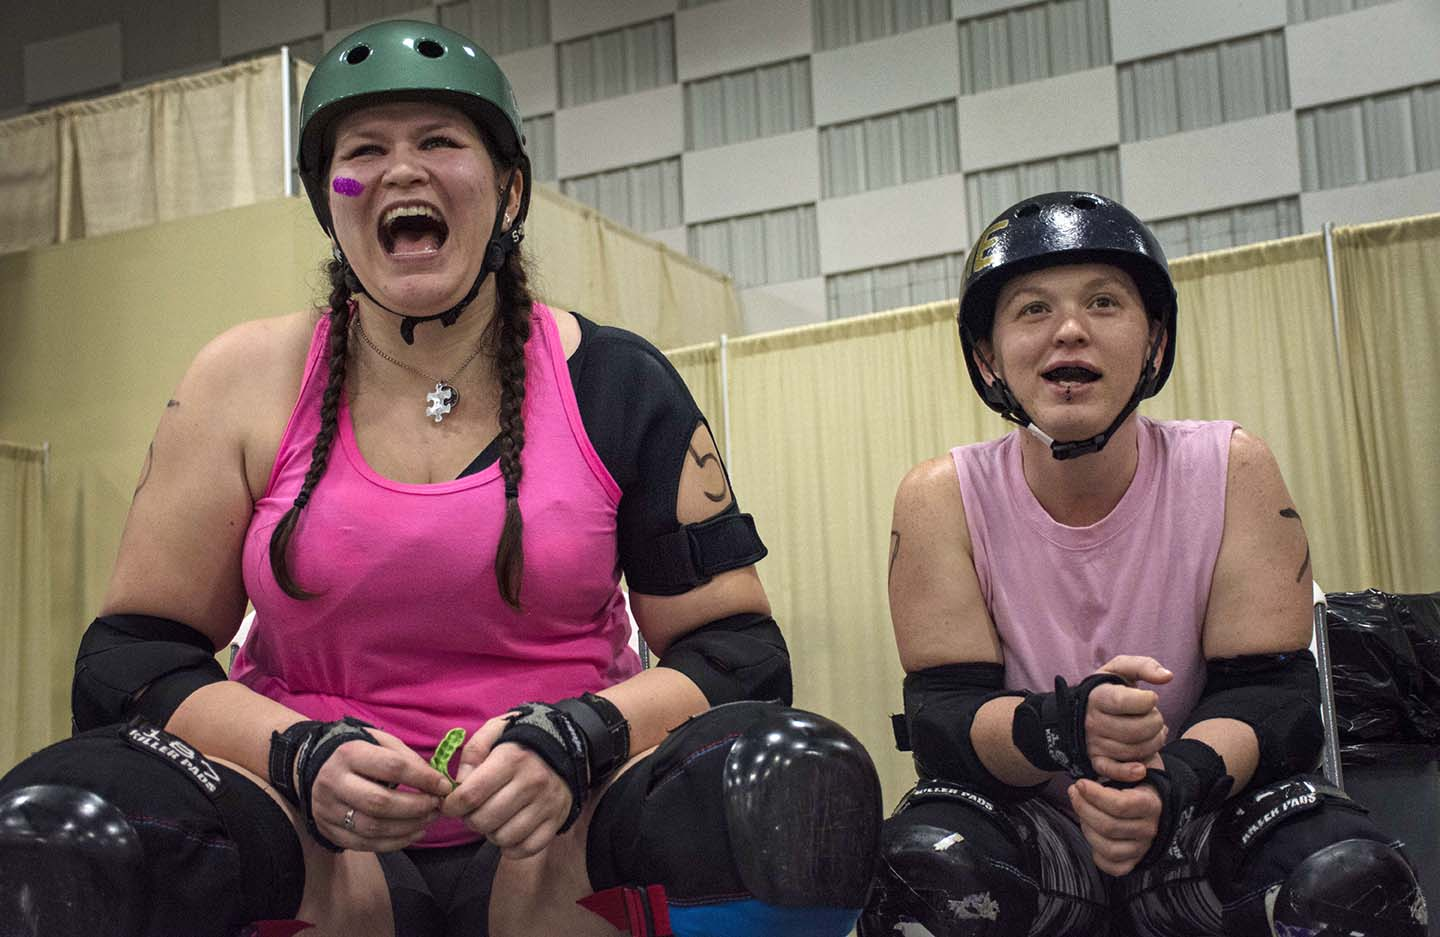 Britt Beiter and Searia Shappard, both of Murphysboro, react as their team the Bloody Roses scores a point Saturday, Feb. 18, 2017, in a co-ed scrimmage organized by the Southern llinois Roller Girls in The Pavilion of the City of Marion. (Athena Chrysanthou | @Chrysant1Athena)